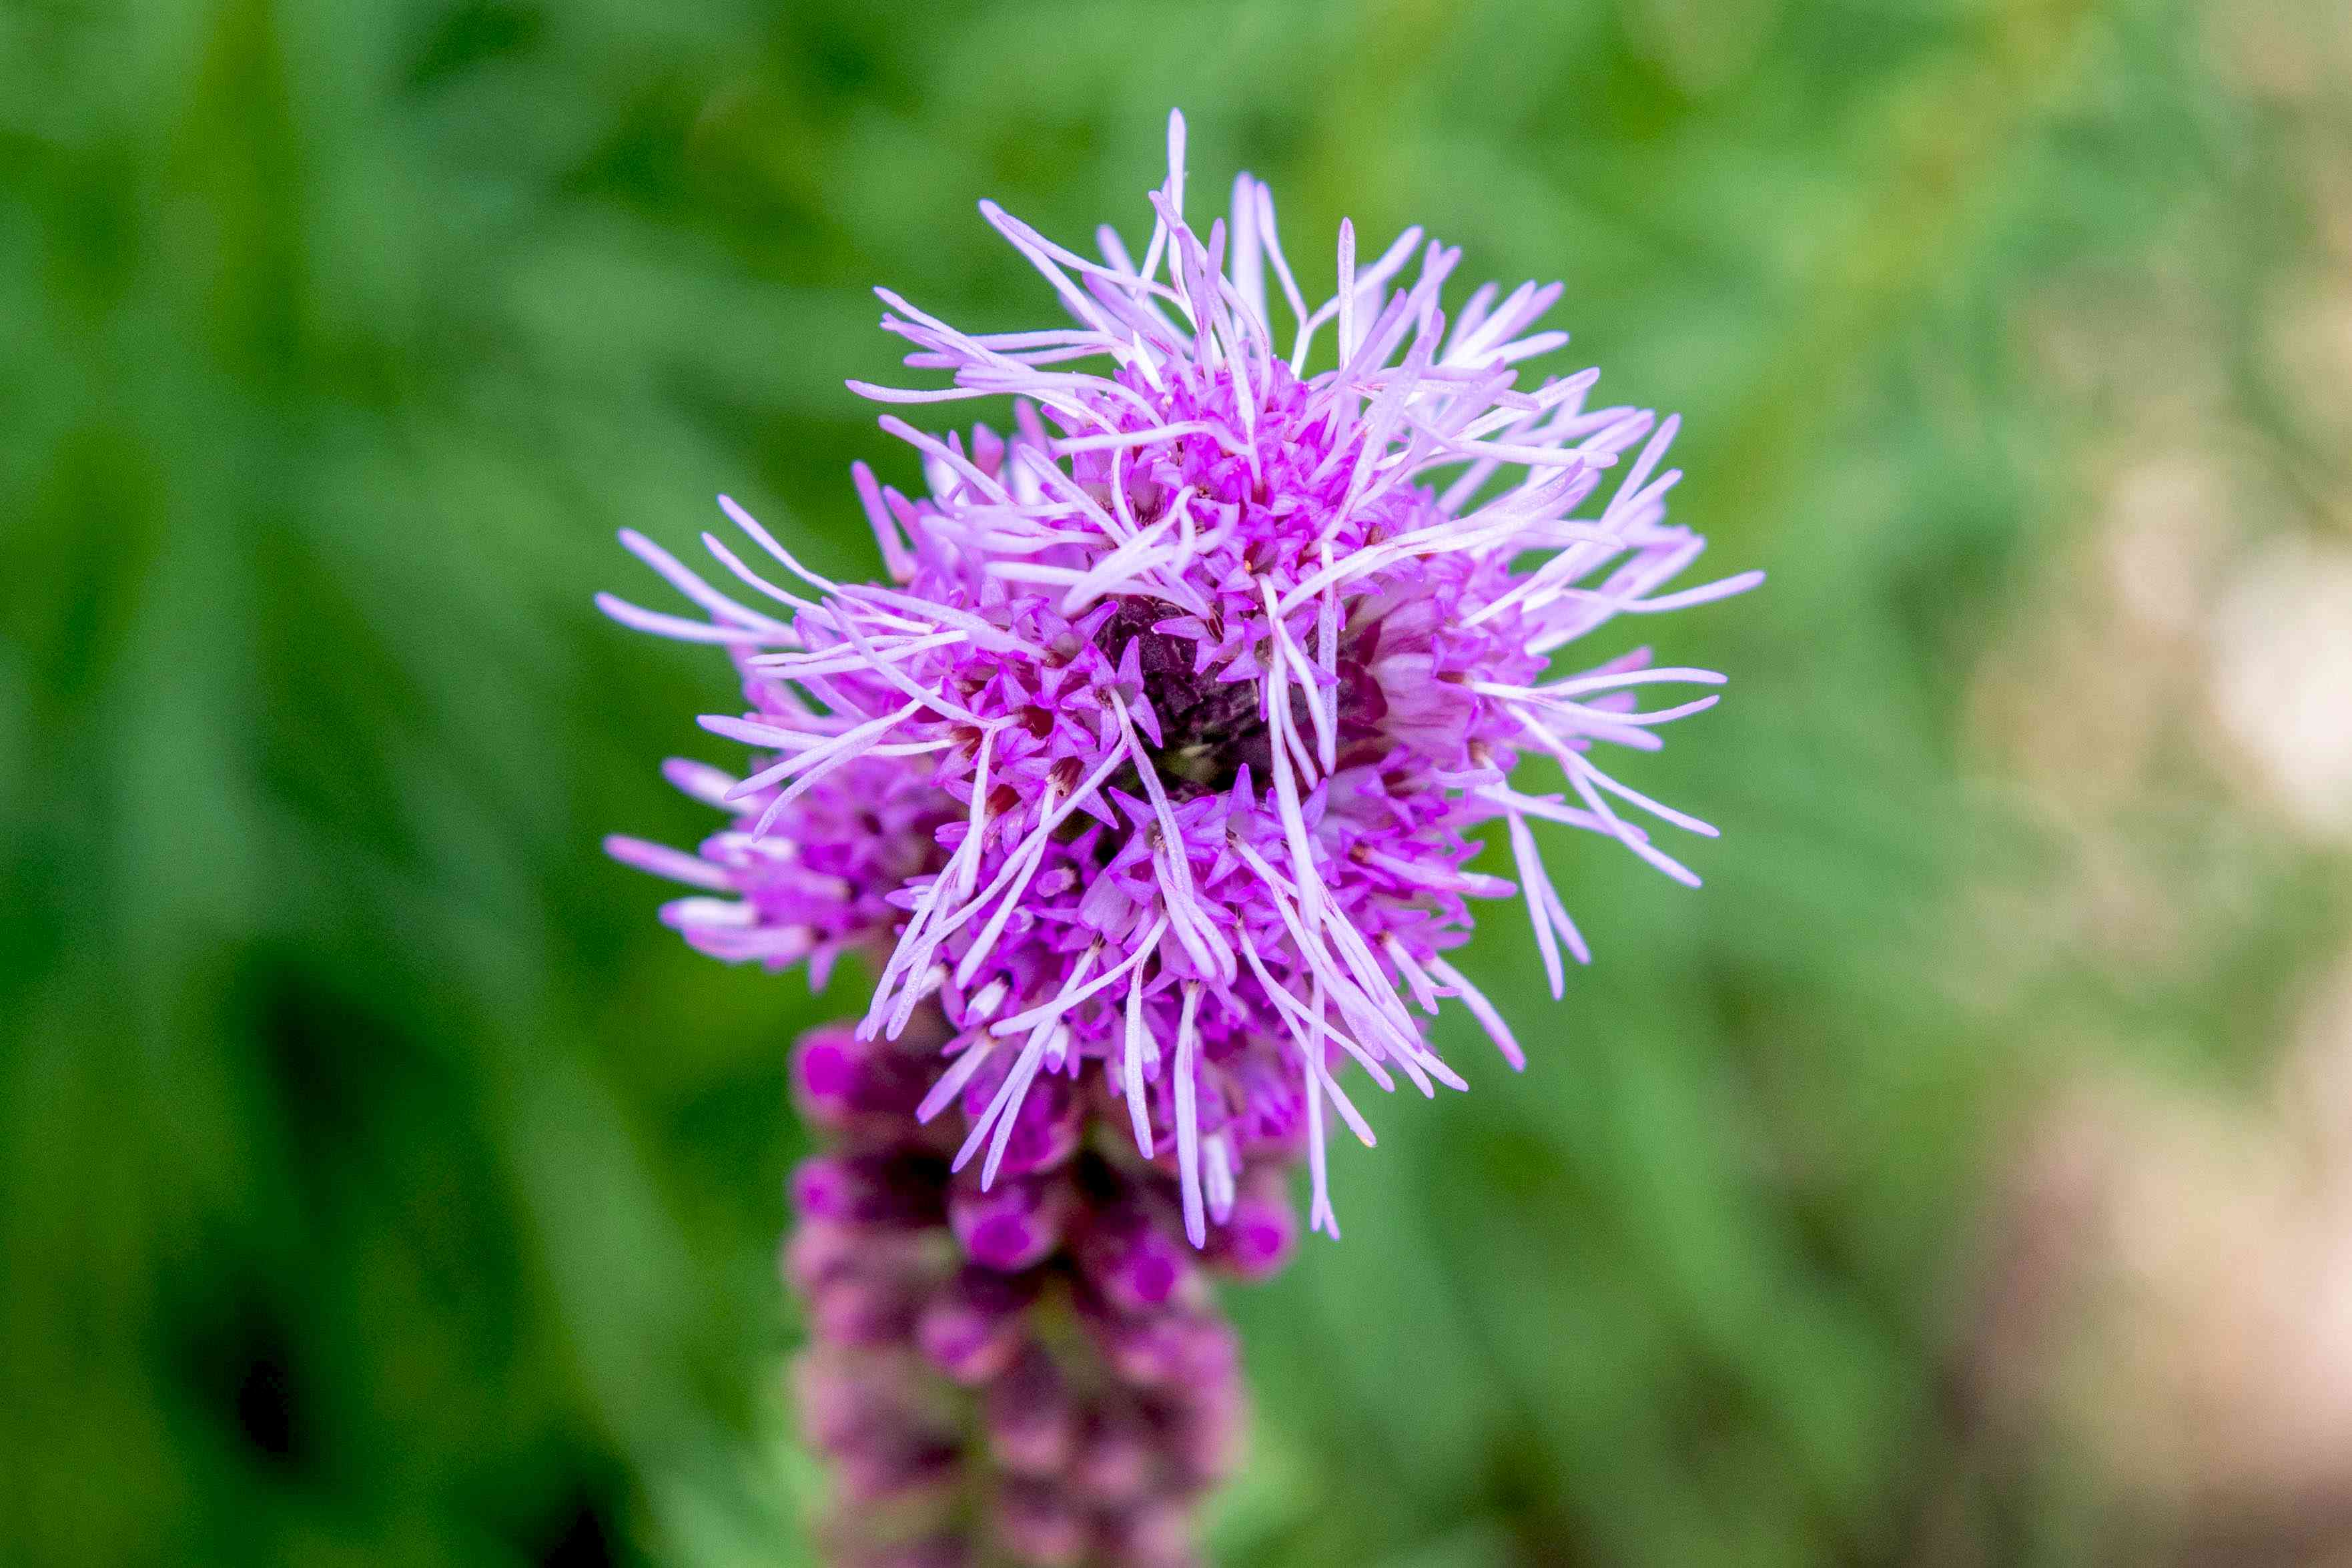 Prairie blazing star plant with bright purple and prickly flowers clsoeup